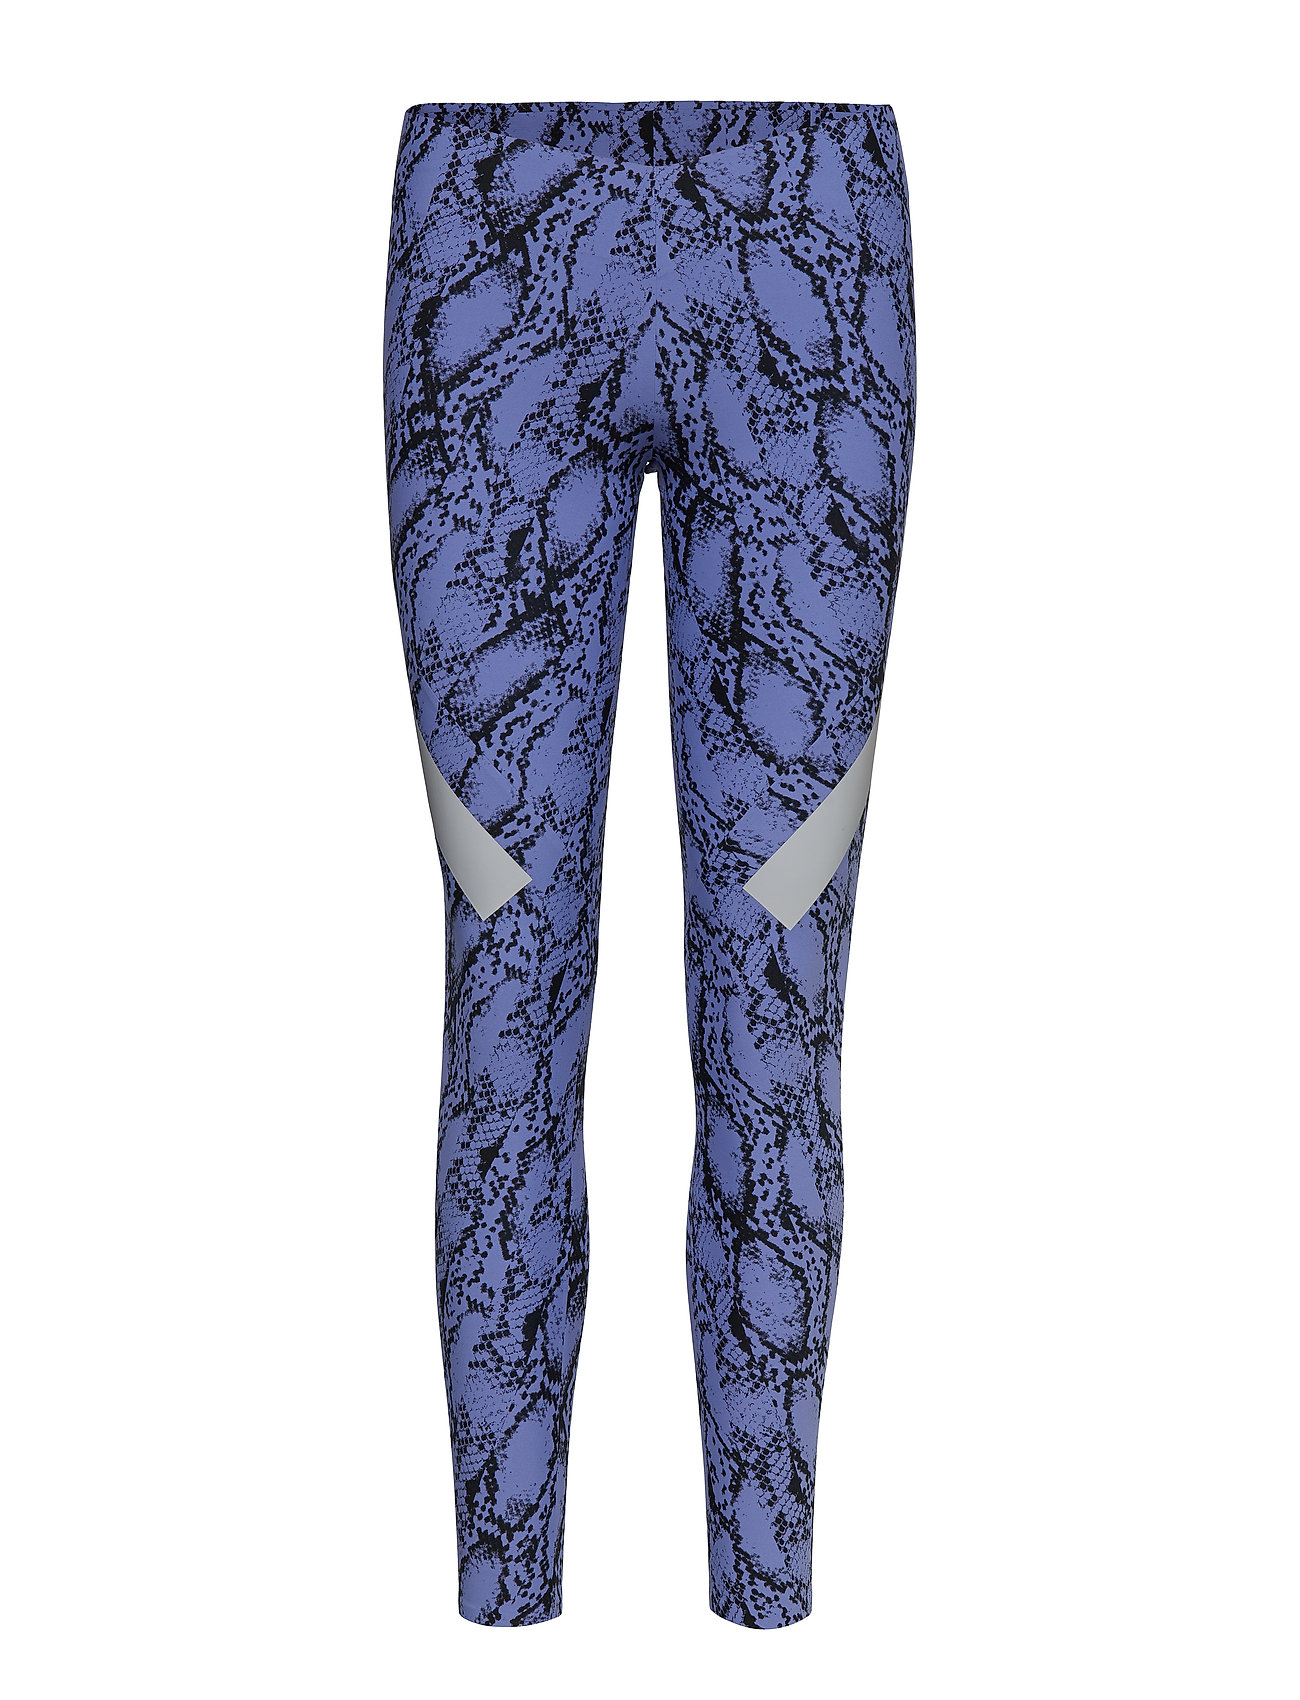 adidas by Stella McCartney ALPHASKIN TIGHT - JOYPUR/BLACK